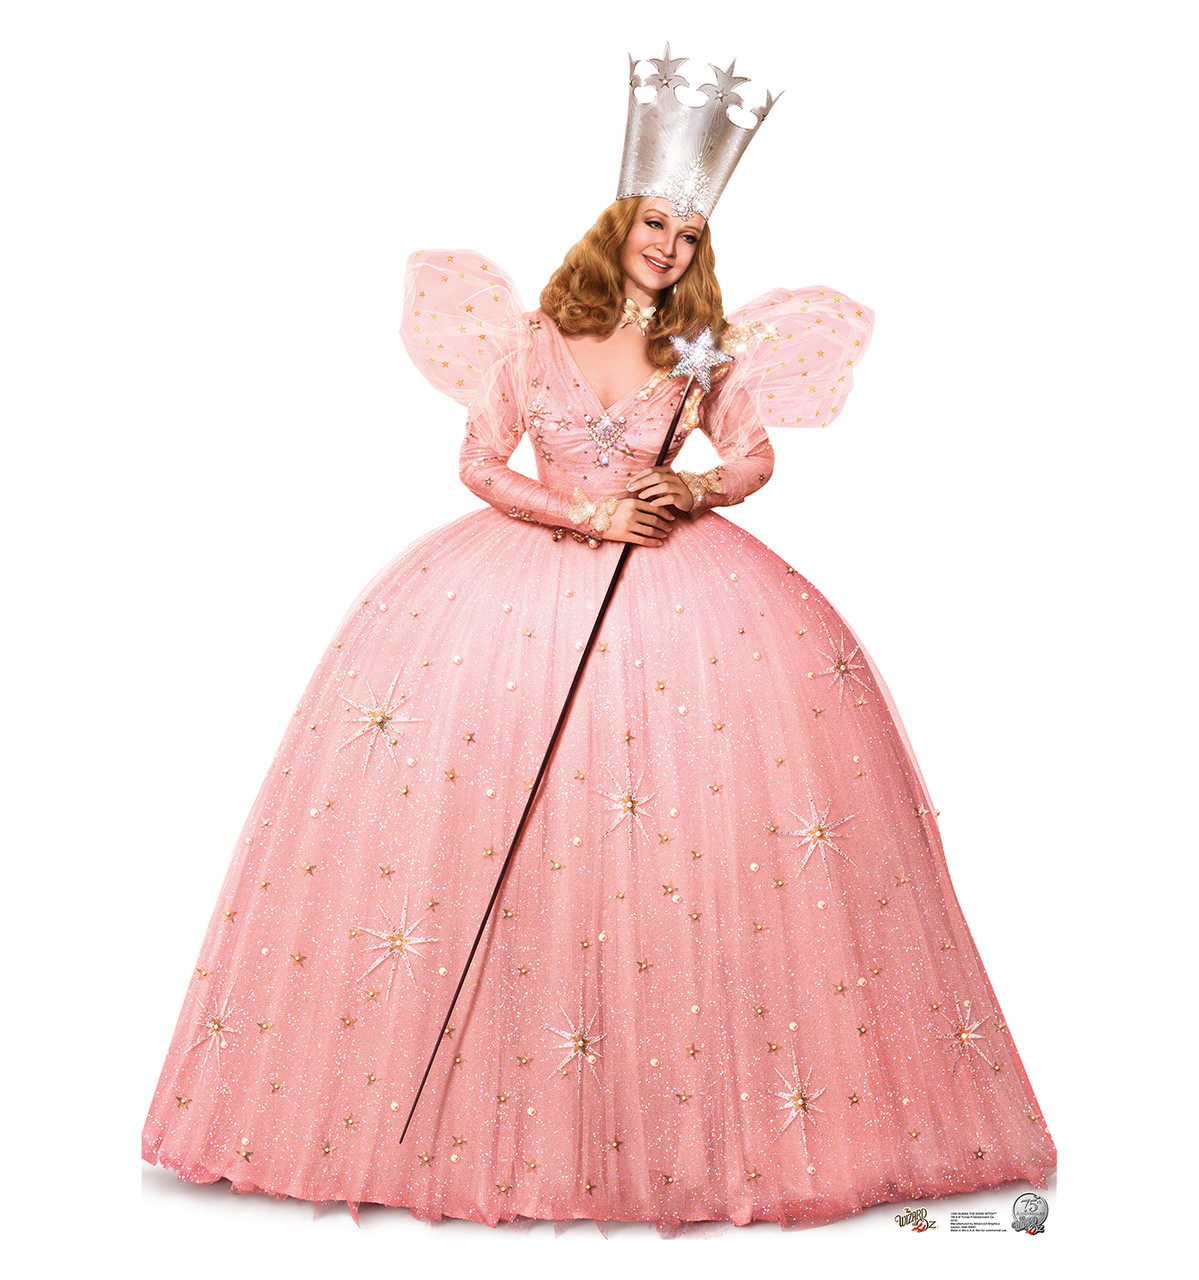 Life-size Glinda the Good Witch - Wizard of Oz Cardboard Standup